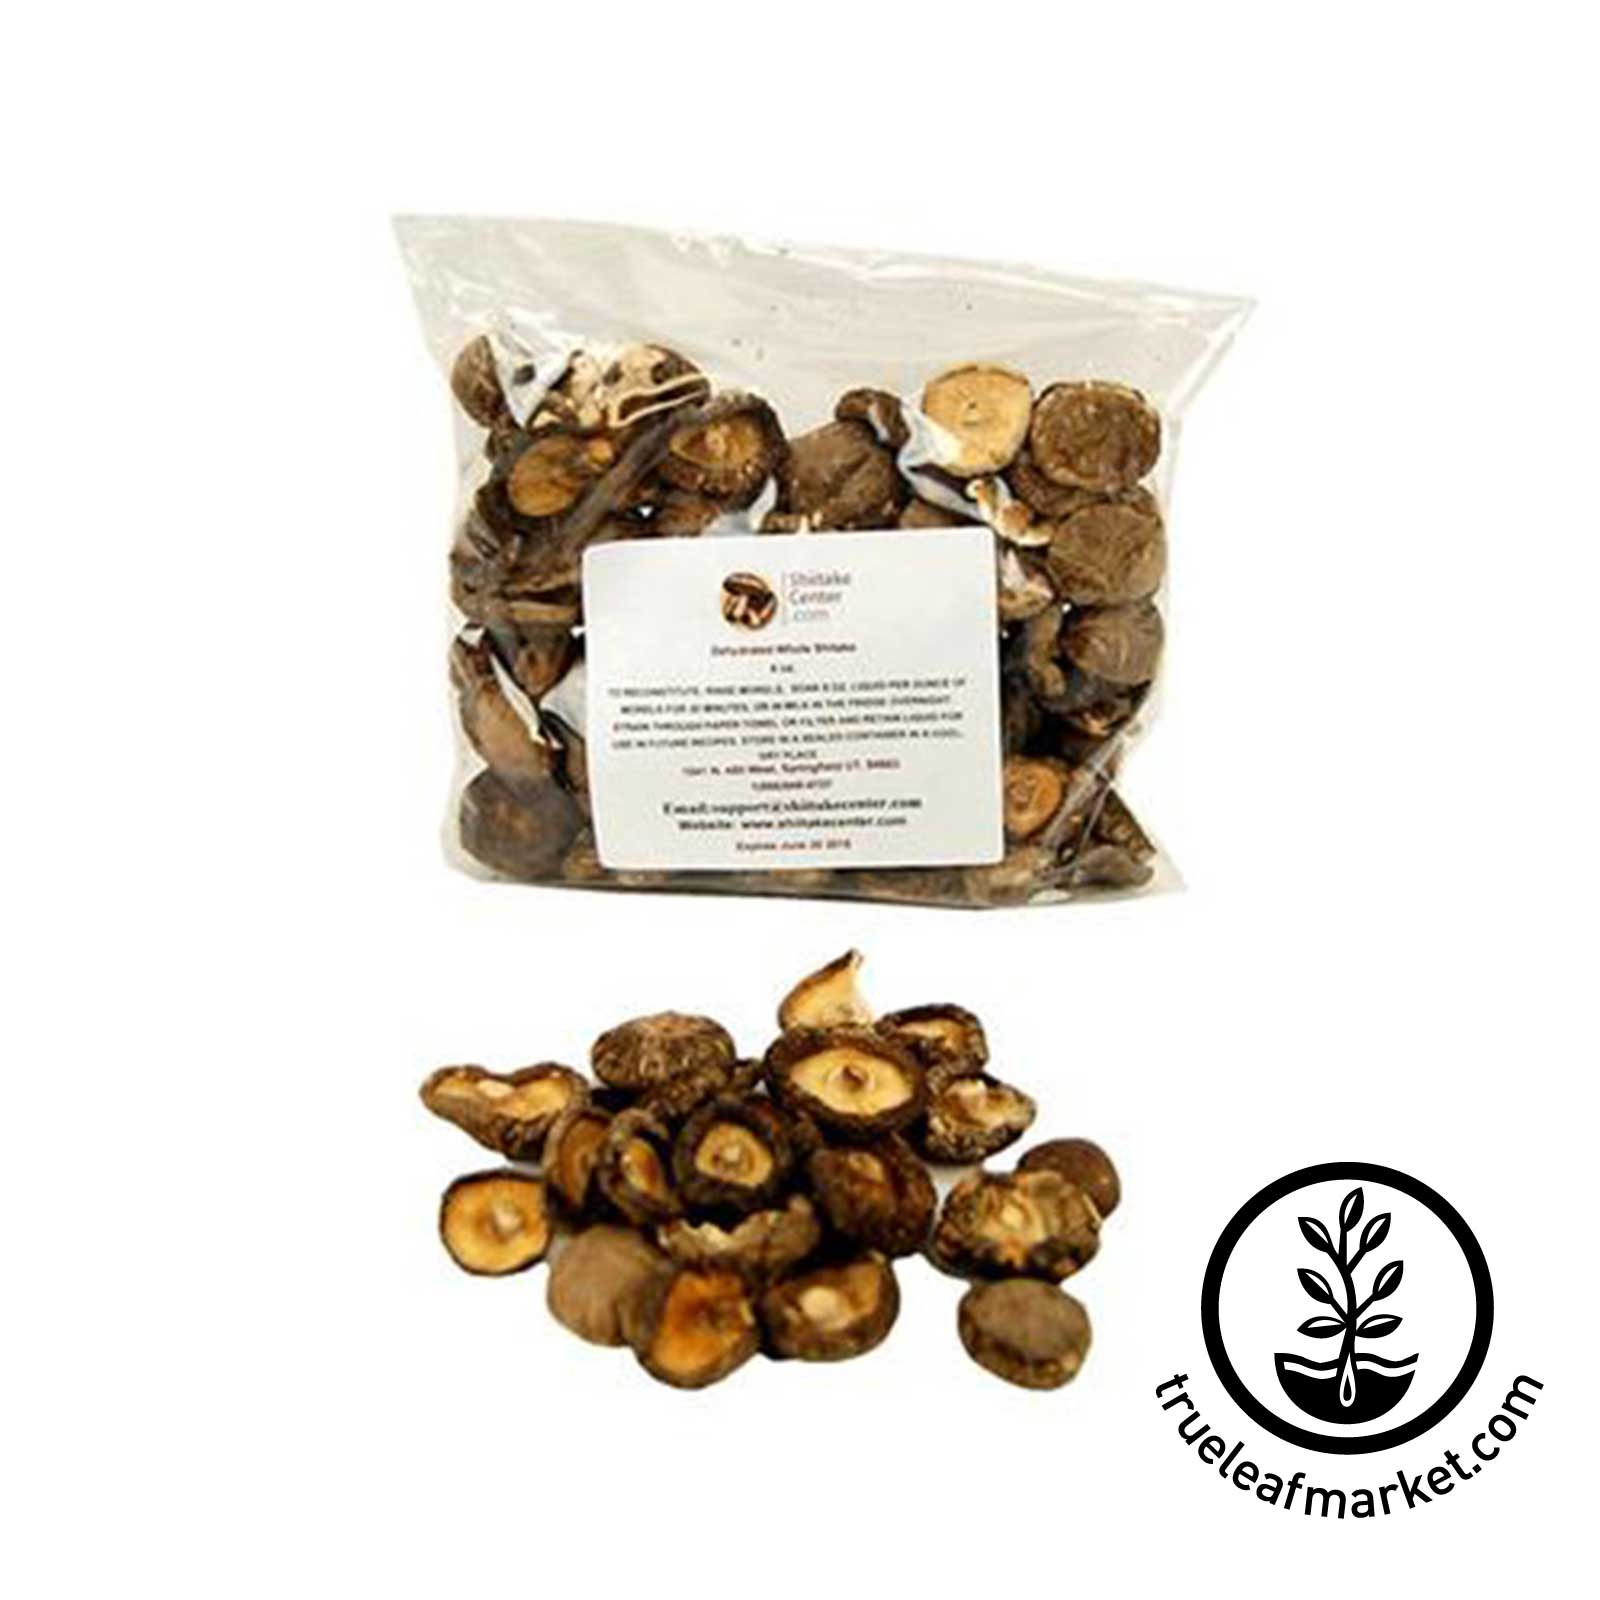 Whole Shiitake Mushrooms 4oz